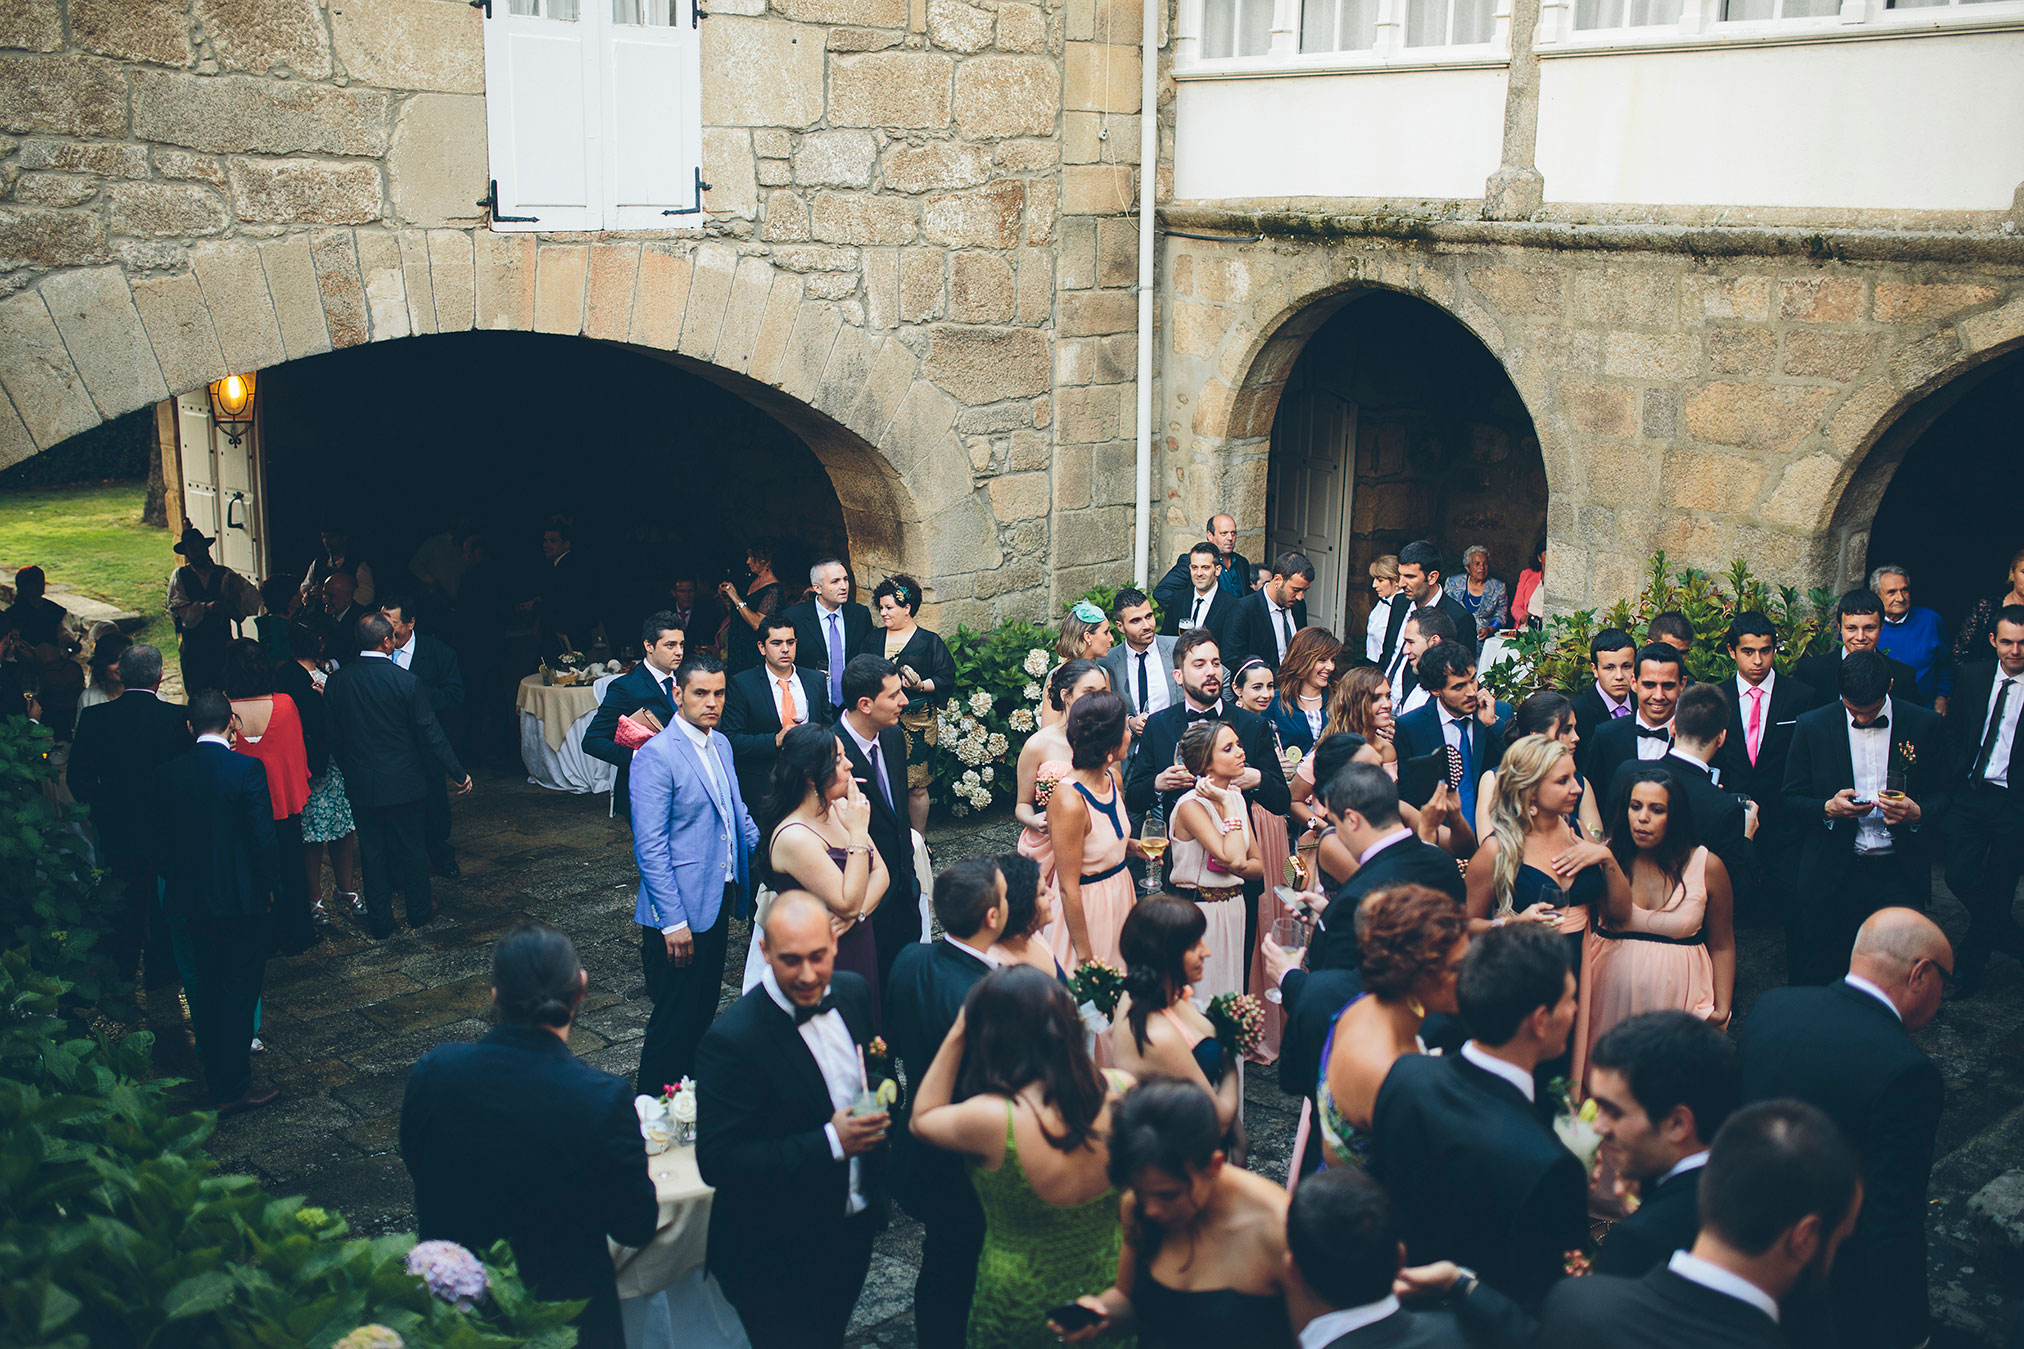 Wedding PhotographerGraciela Vilagudin Dublin Spain 0384.jpg